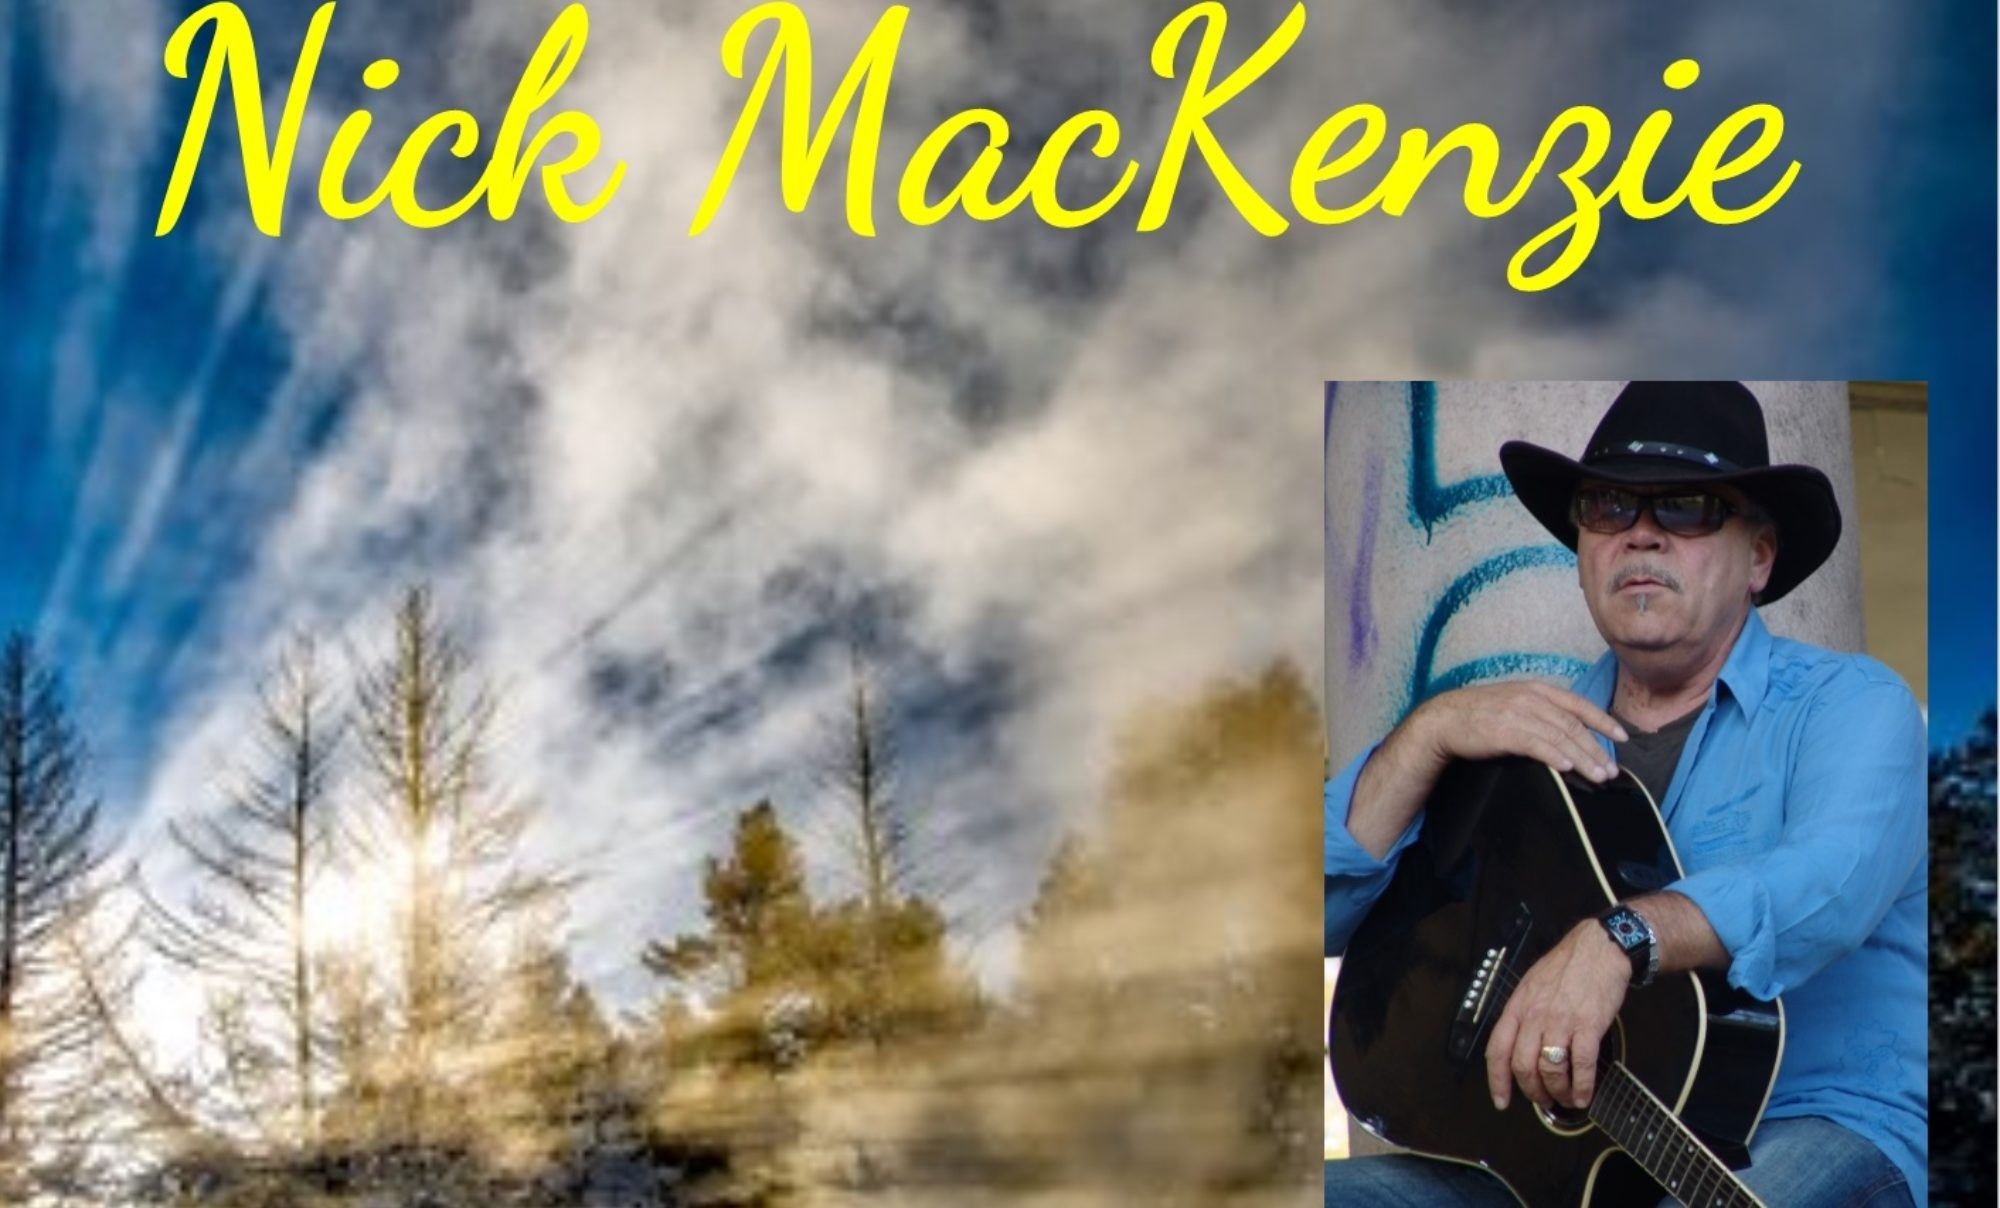 Nick MacKenzies Blog